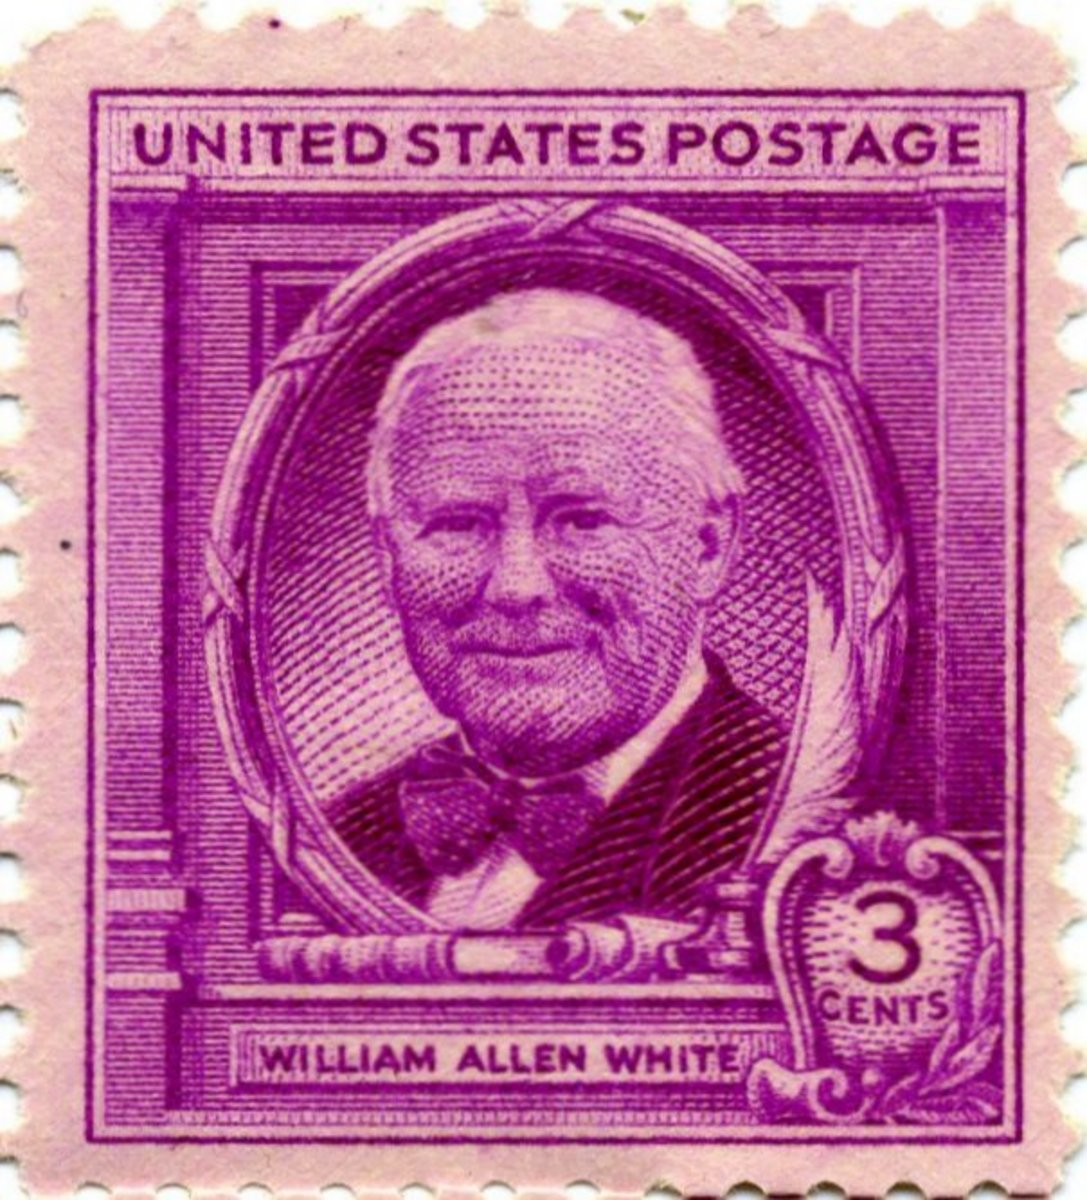 William Allen White, newspaper publisher of Emporia, Kansas, commemorated in US postage stamp of 1948.